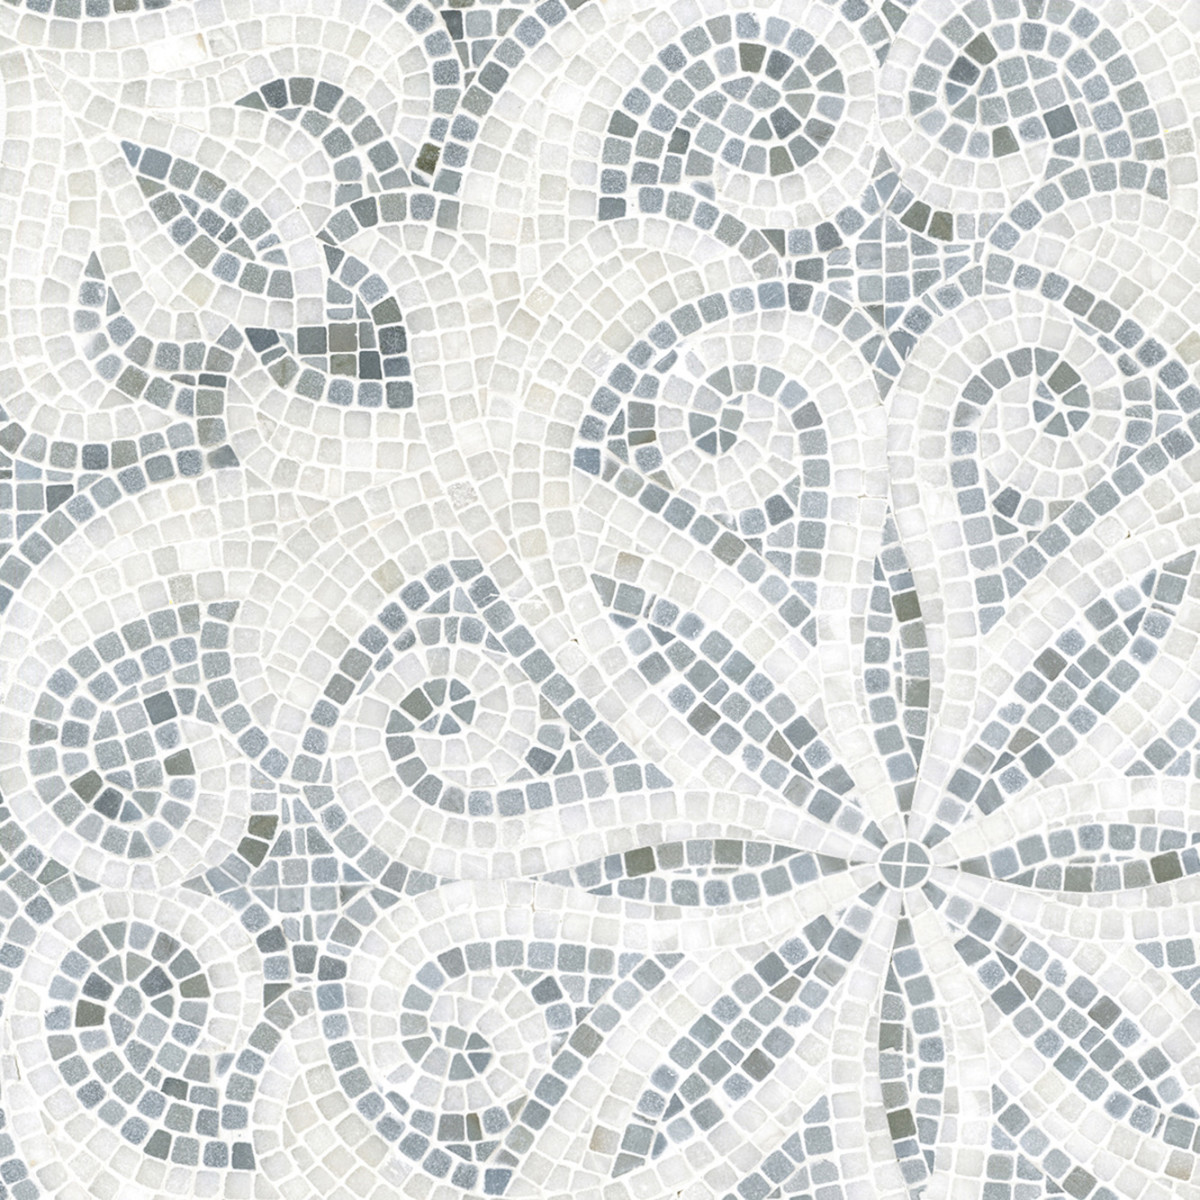 arabesque mosaic tile pattern